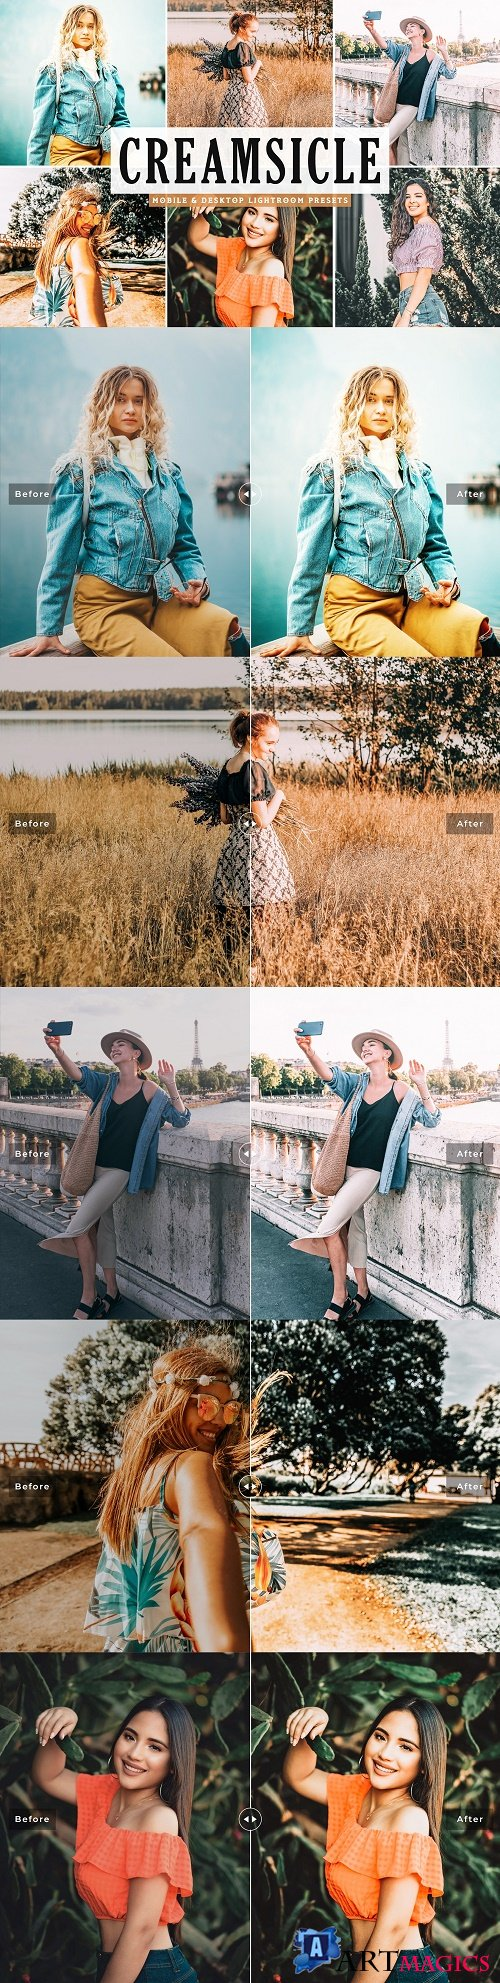 Creamsicle Lightroom Presets Pack - 4639070